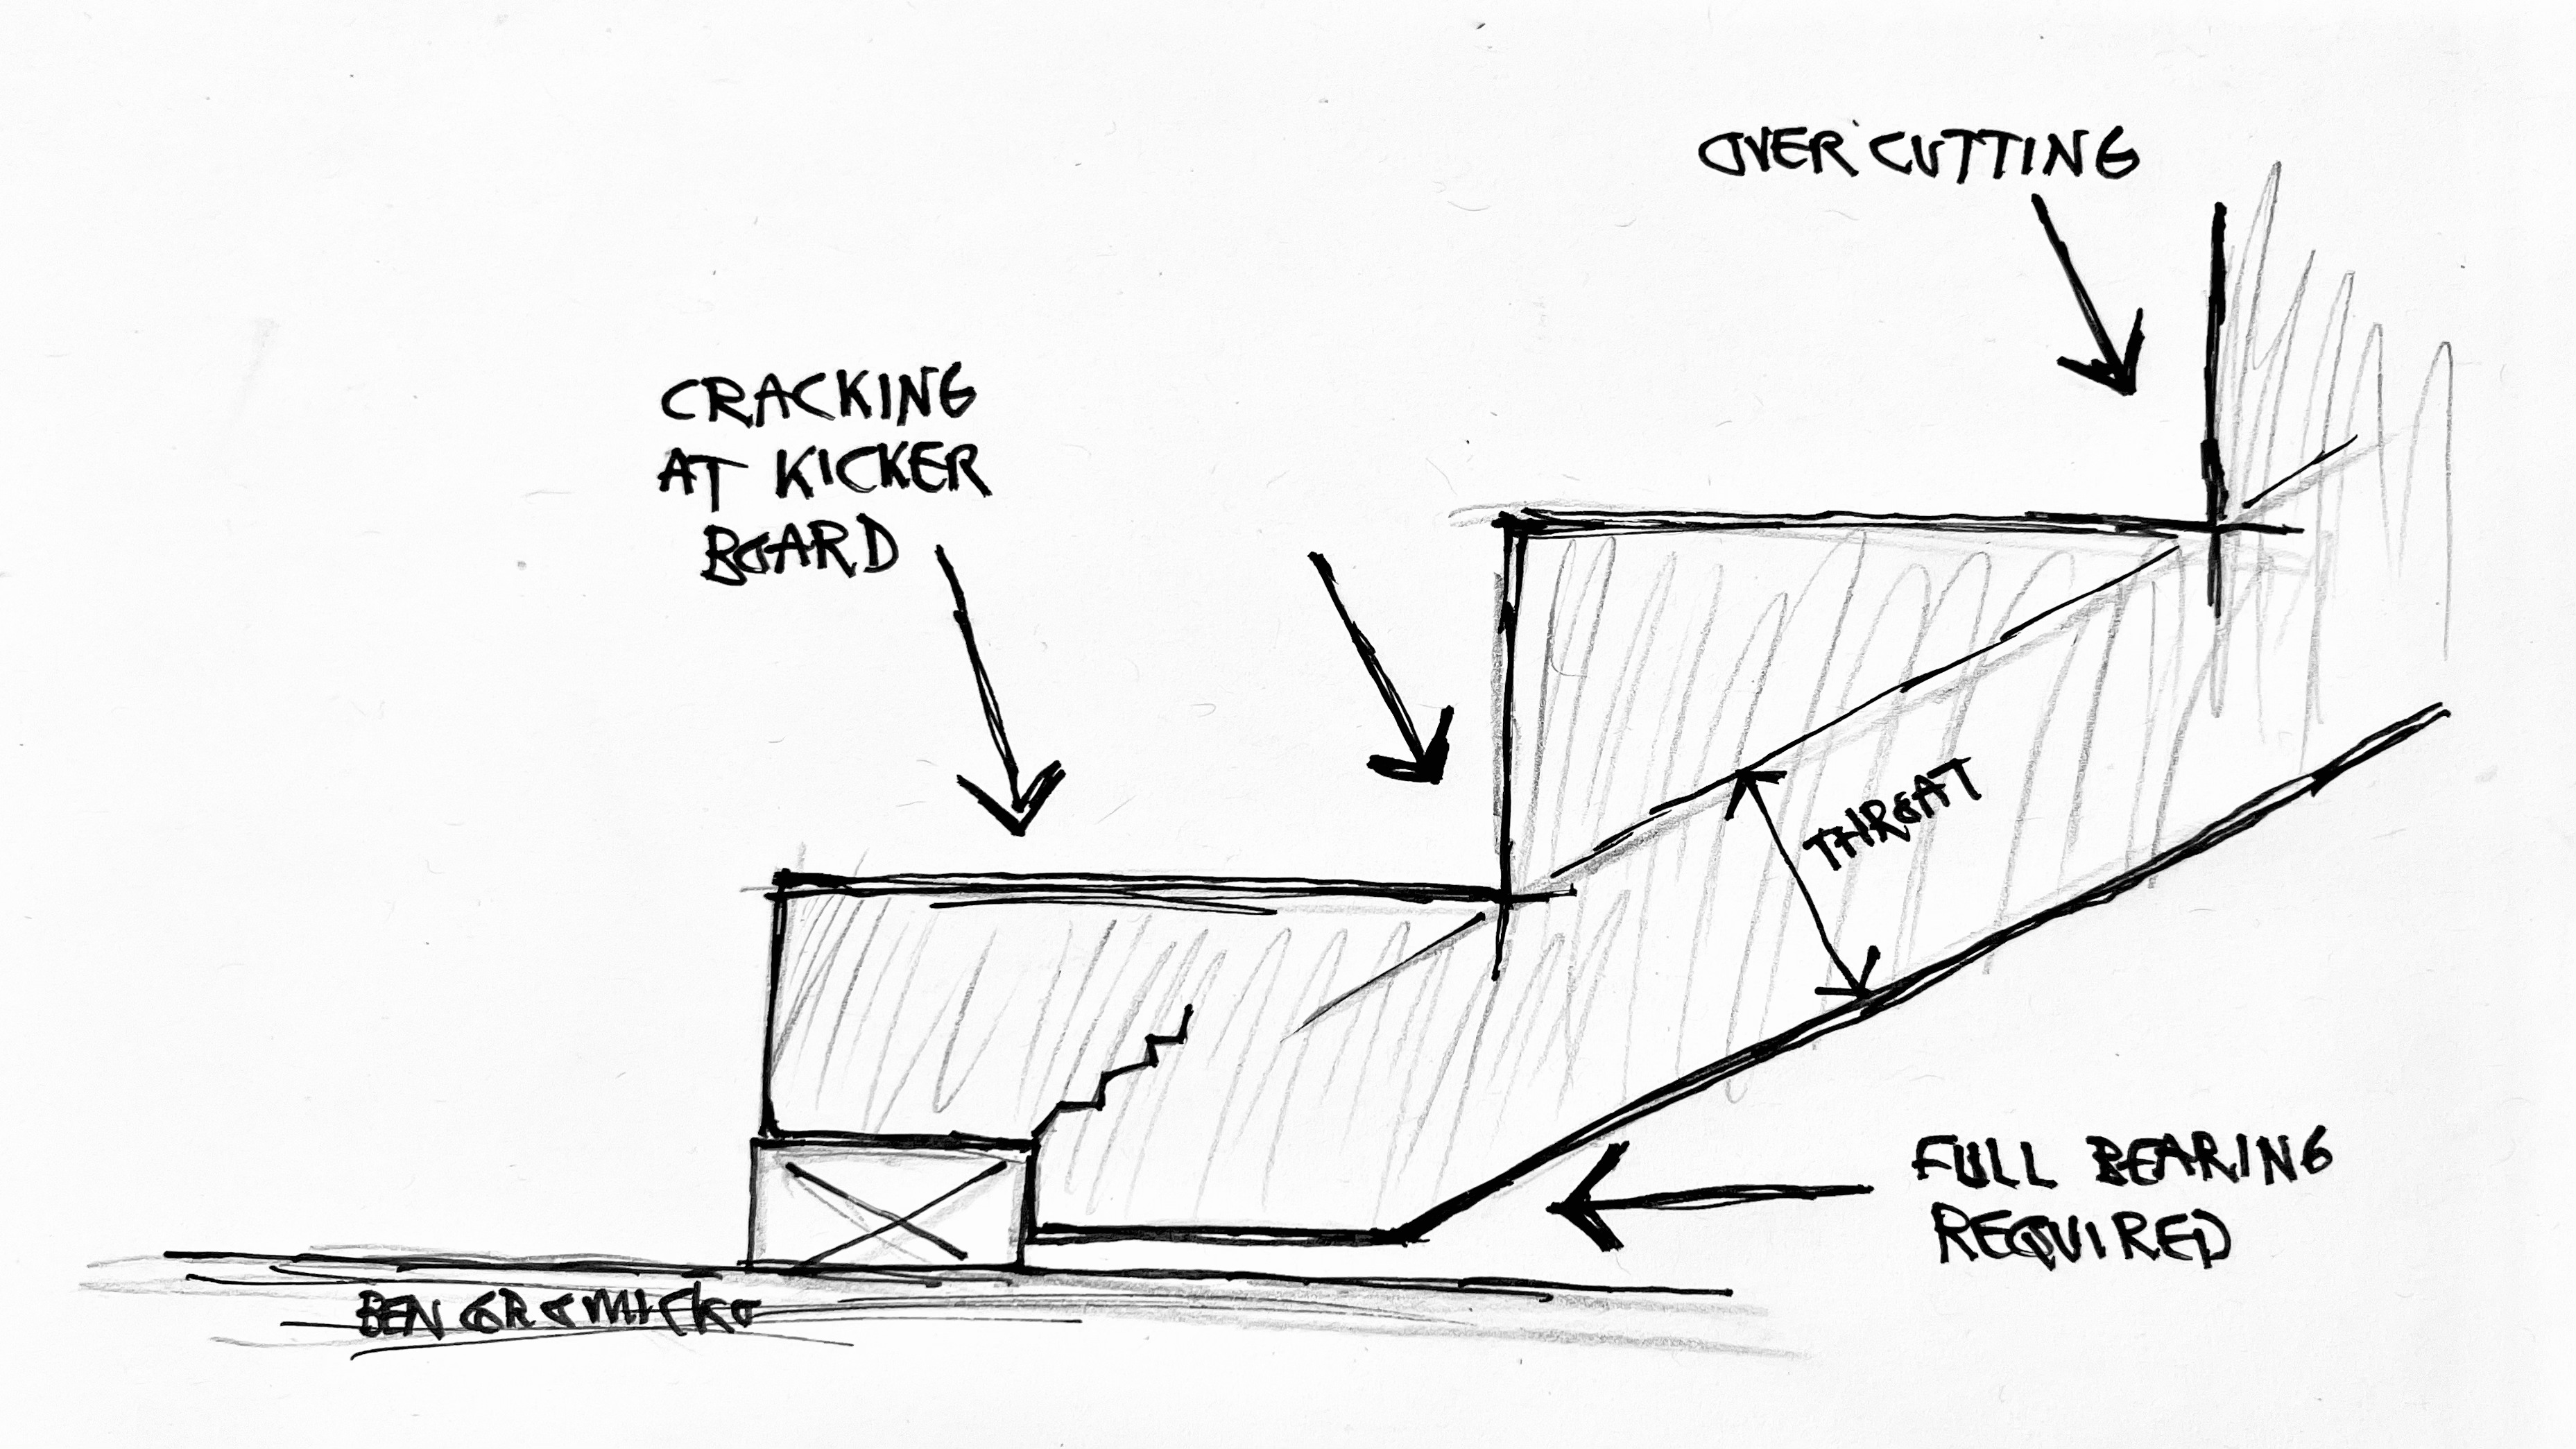 Notching dimension lumber to build cut stringers (see illustration below) is a common practice that takes into consideration only the depth of wood beneath the tread-riser notches as effective in resisting the applied load. For cut stringers, care should be taken not to overcut the limits of the notch. Overcutting notches in stringers is a major defect.